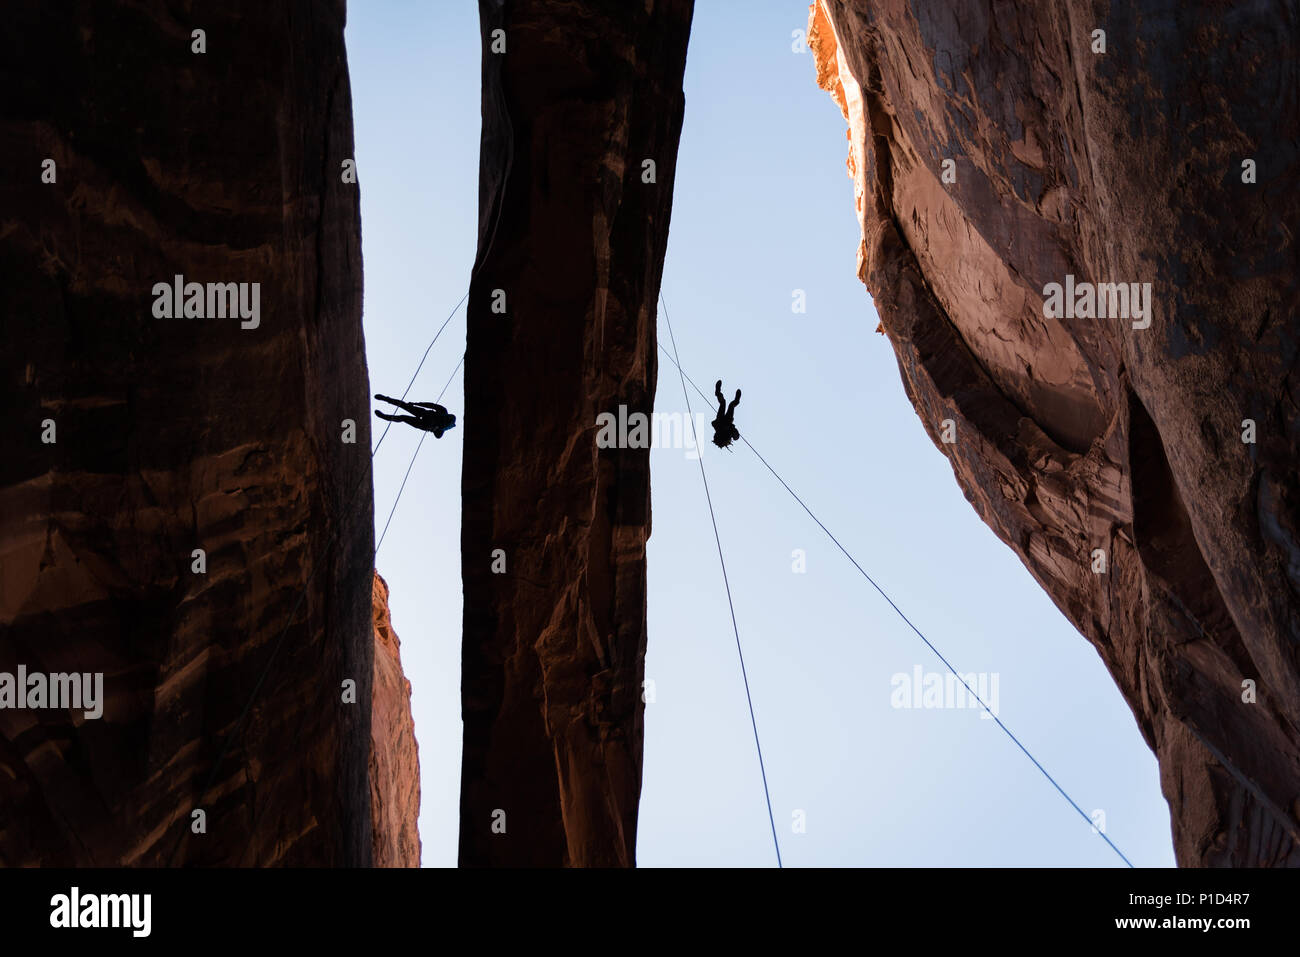 People rappelling from an arch in Moab, Utah. - Stock Image